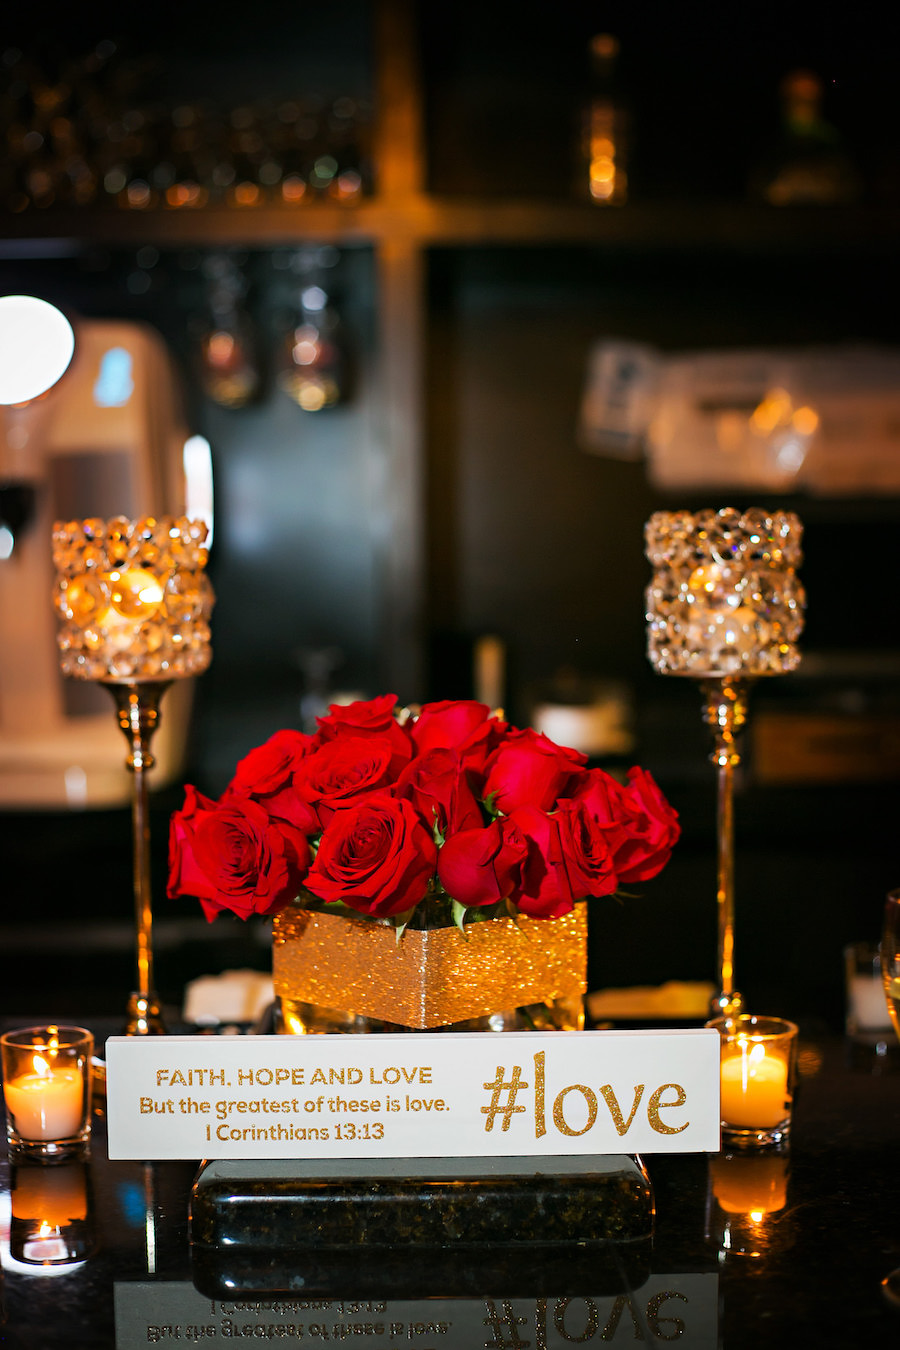 Tampa Wedding Reception Table Decor with Candlelight and Red Rose Centerpiece   Tampa Wedding Photographer Limelight Photography